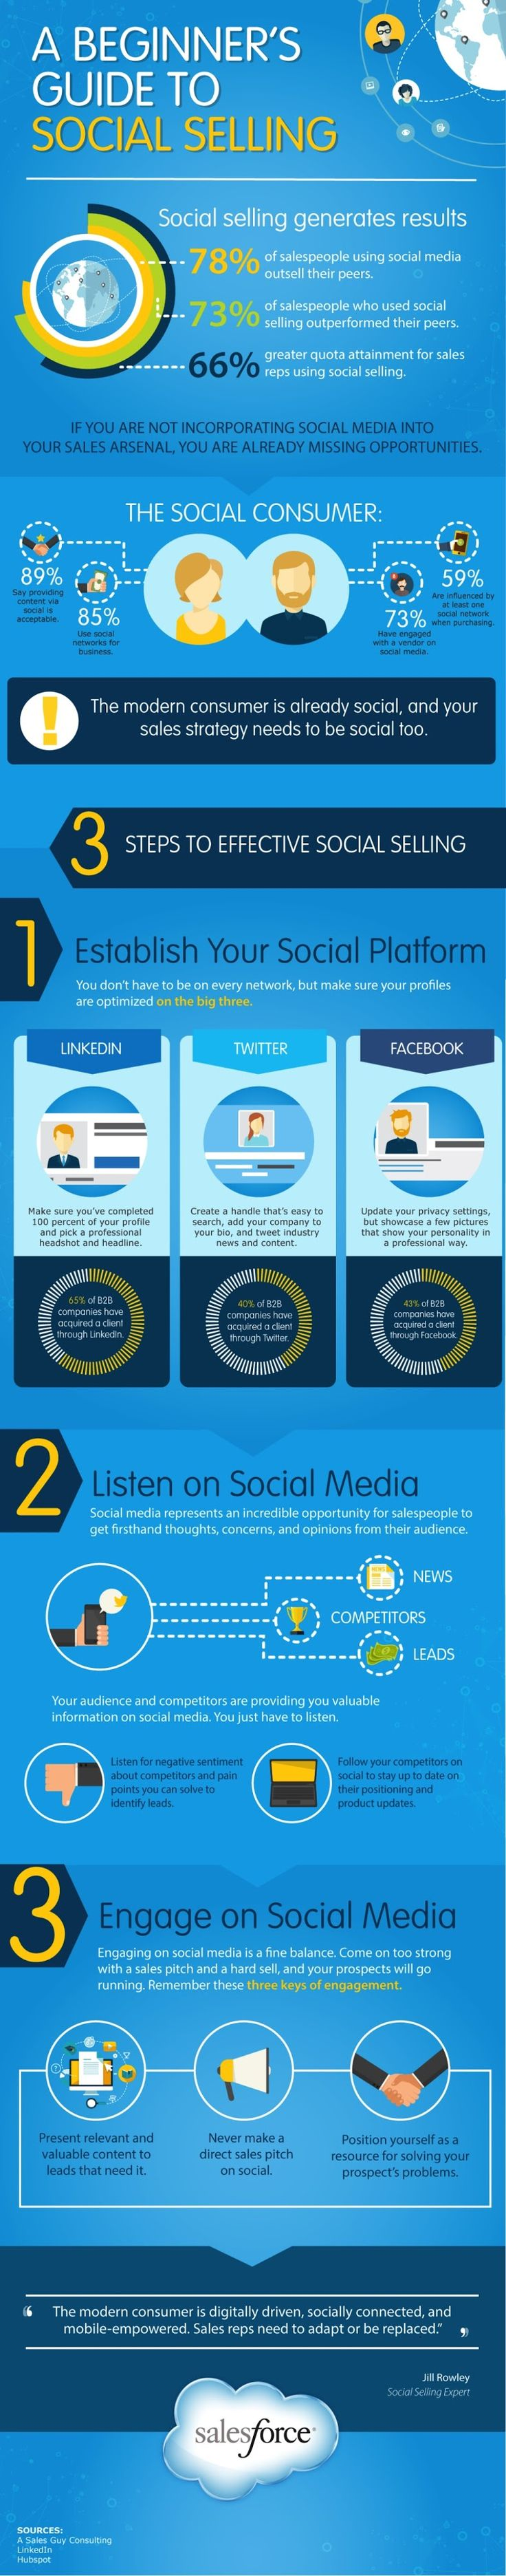 A Beginner's Guide to Selling with Social Media - #infographic #socialmedia #marketing www.linkreaction.com.au